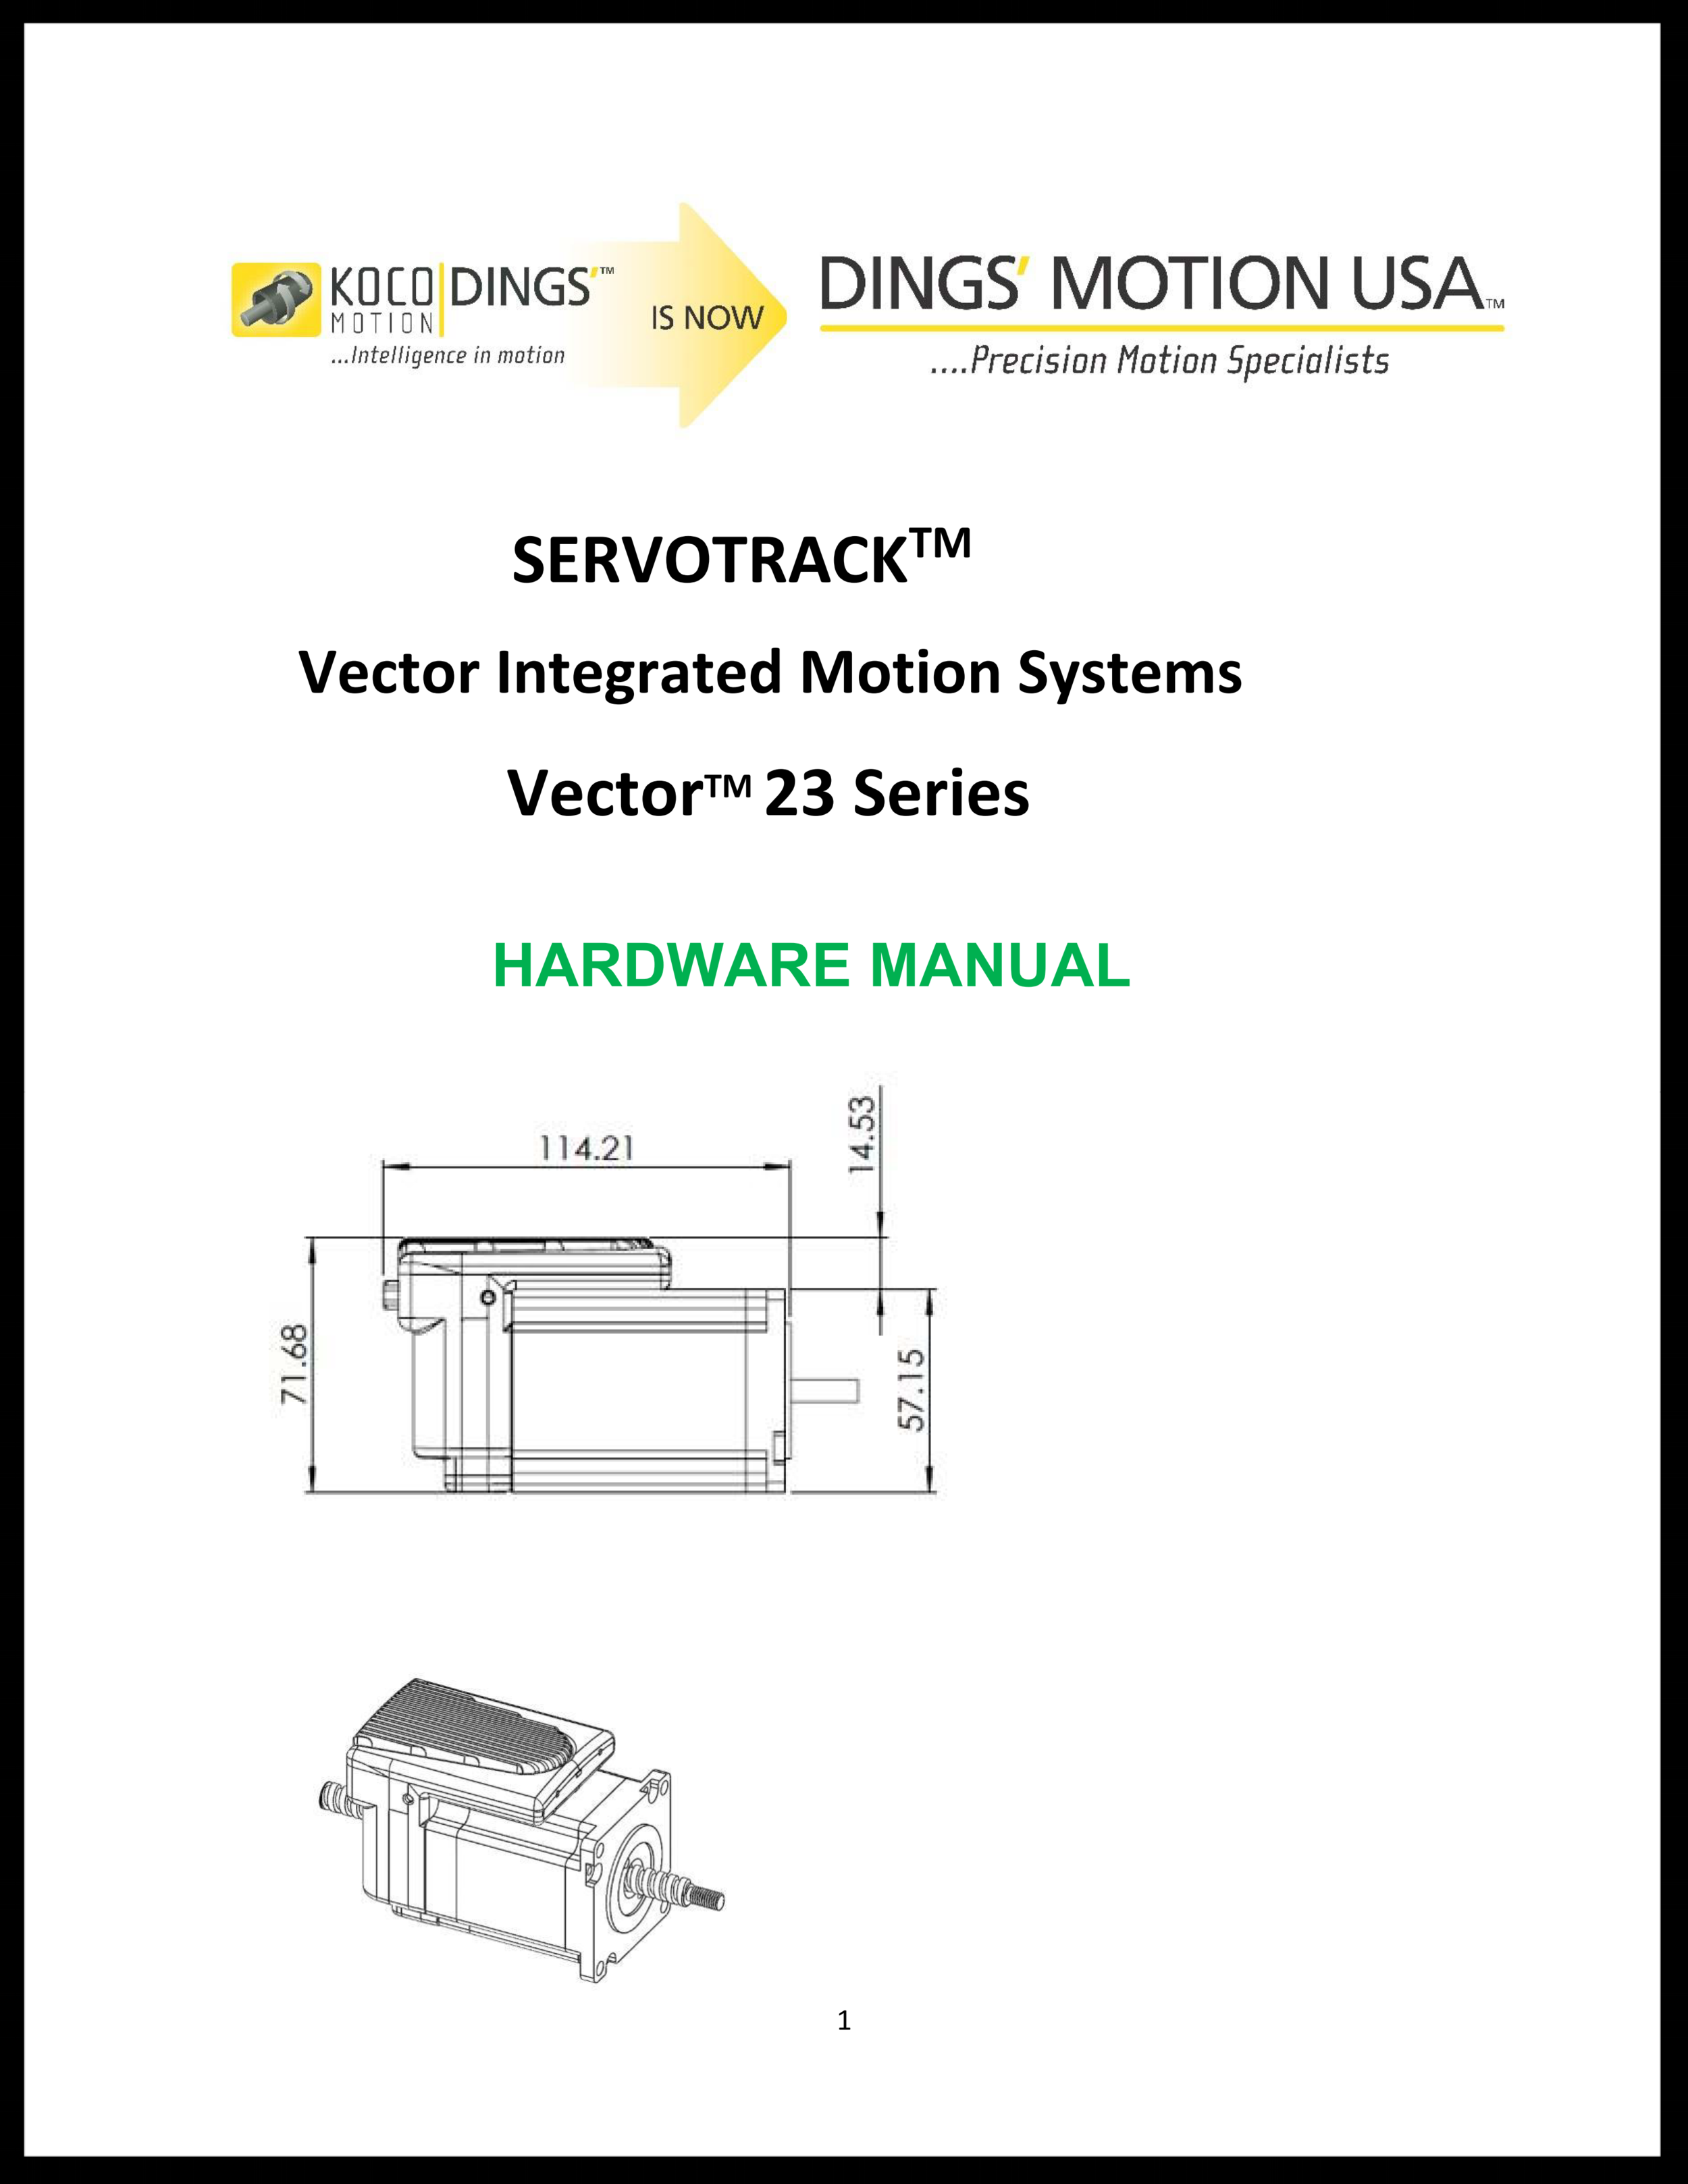 Vector Hardware Manual